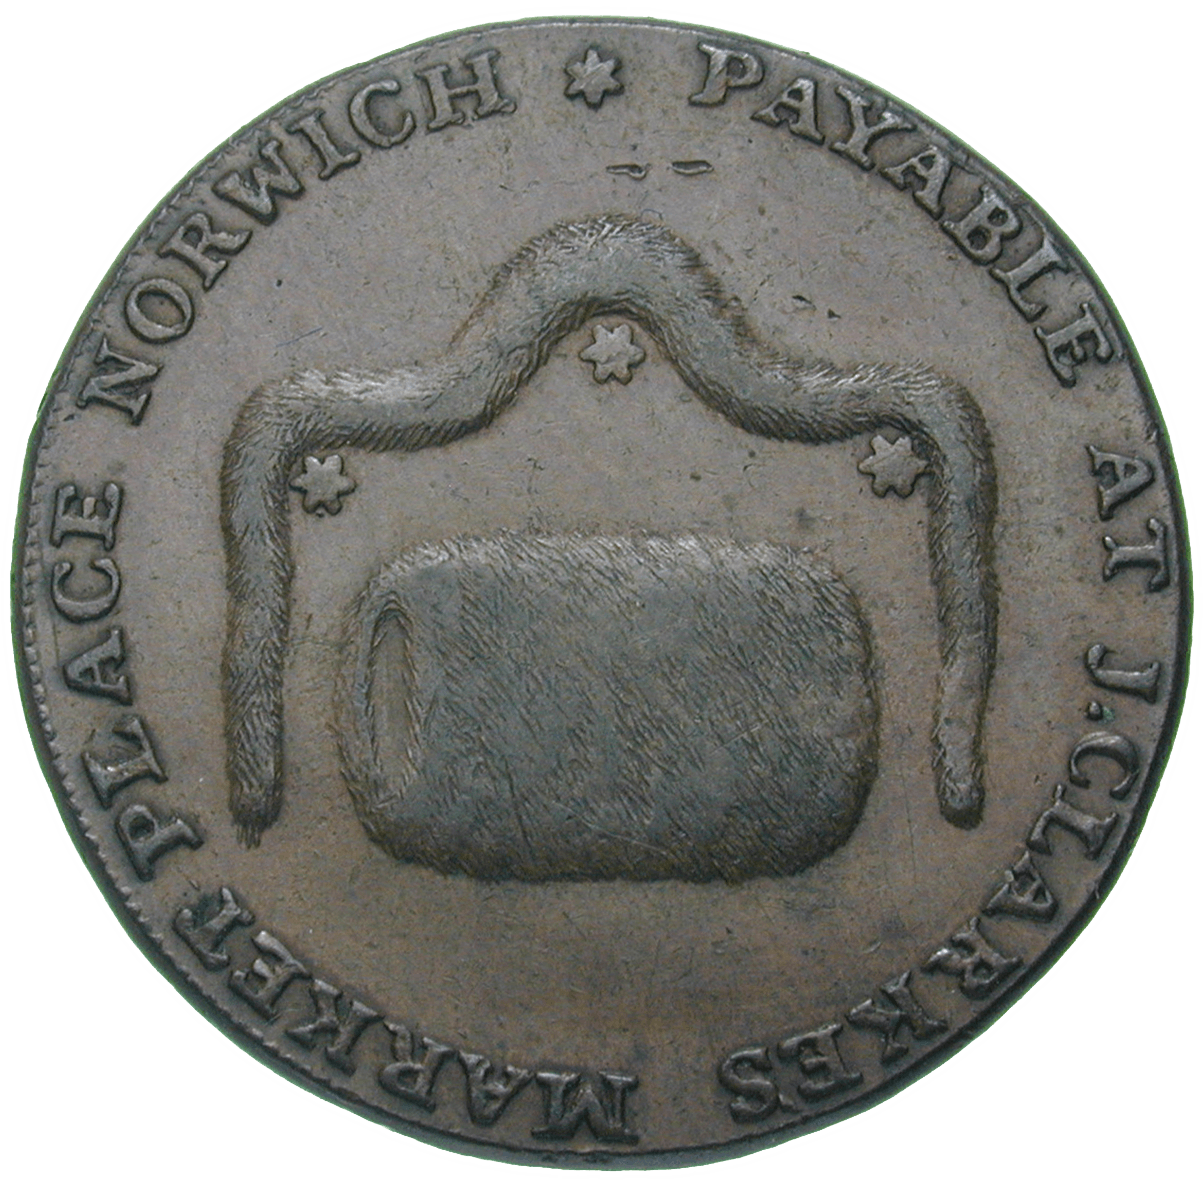 United Kingdom of Great Britain, J. Clarke's Market Place, Token worth 1/2 Penny 1794 (obverse)